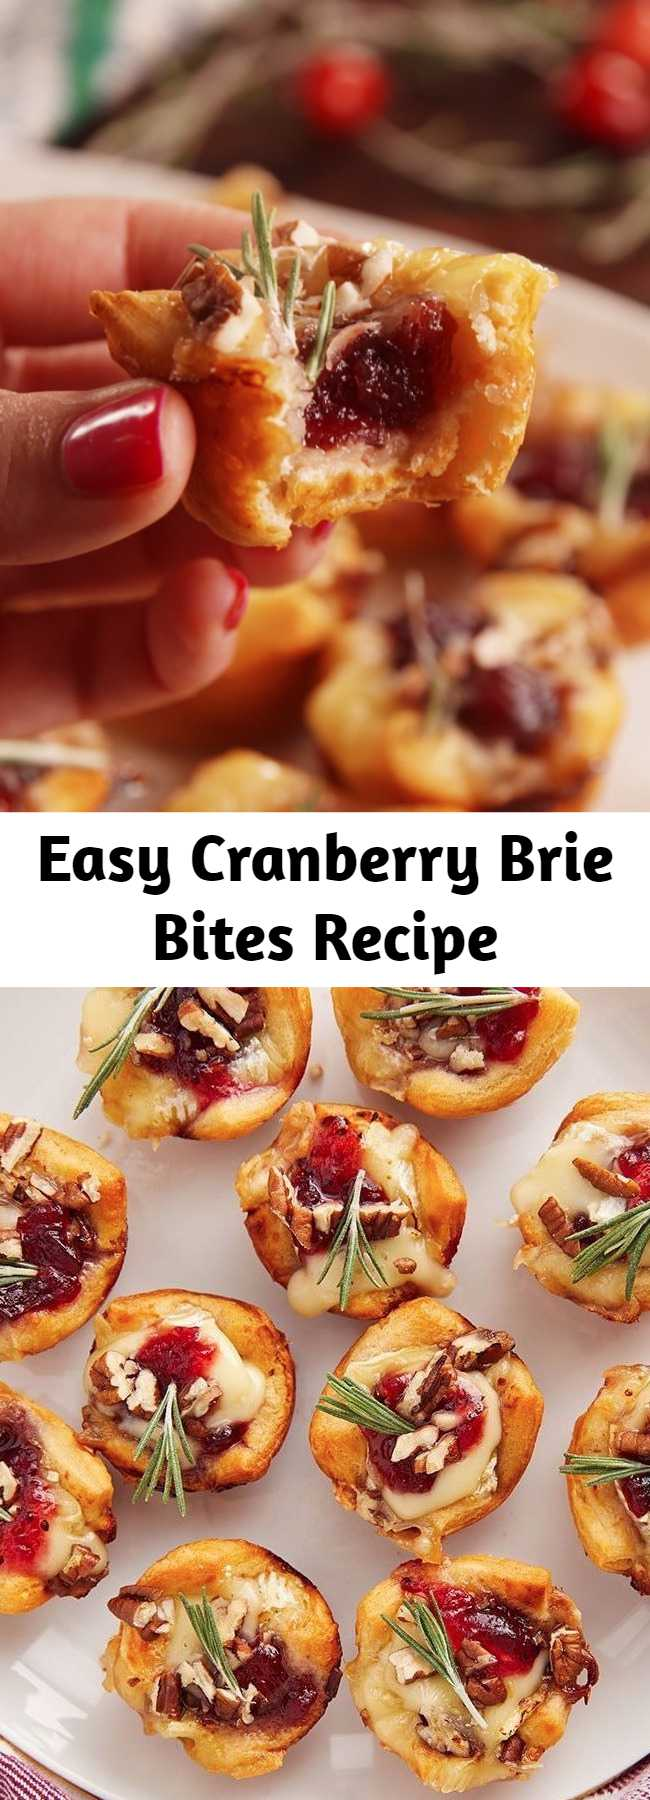 Easy Cranberry Brie Bites Recipe - These Cranberry Brie Bites are perfect for your next holiday party. Why make dough from scratch when everyone loves the canned stuff?! These little guys are the perfect appetizer to make during the holidays. Be warned: It'll forever change the way you think about brie. #easy #recipe #holidays #christmas #thanksgiving #party #appetizer #fingerfoods #apps #ideas #dinner #cranberry #brie #bites #muffintin #baked #crescentroll #pillsbury #bakedbrie